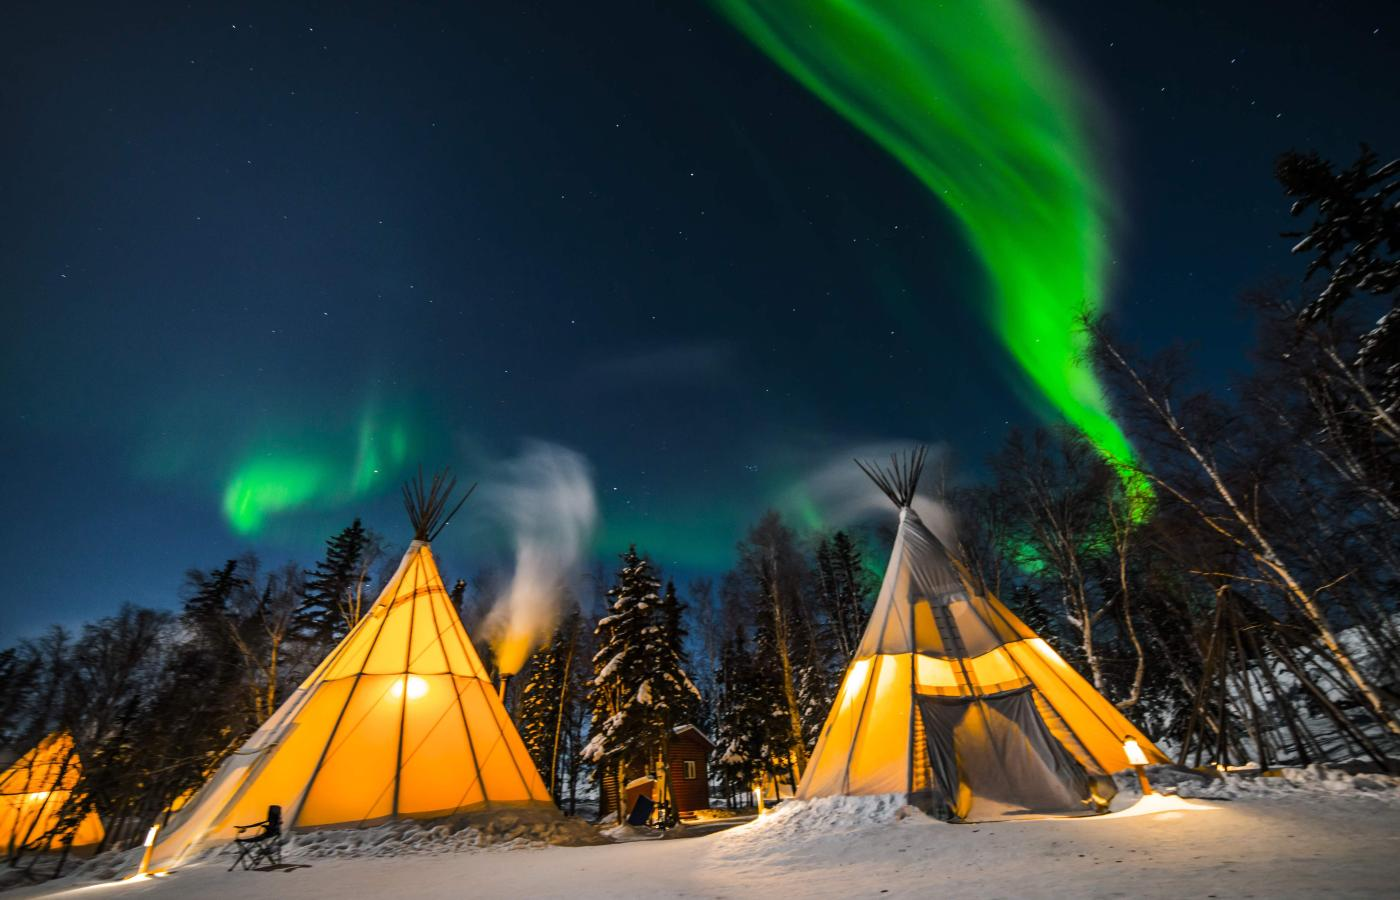 Teepee under green and blue Aurora in the night sky at Aurora Village in the Northwest Territories